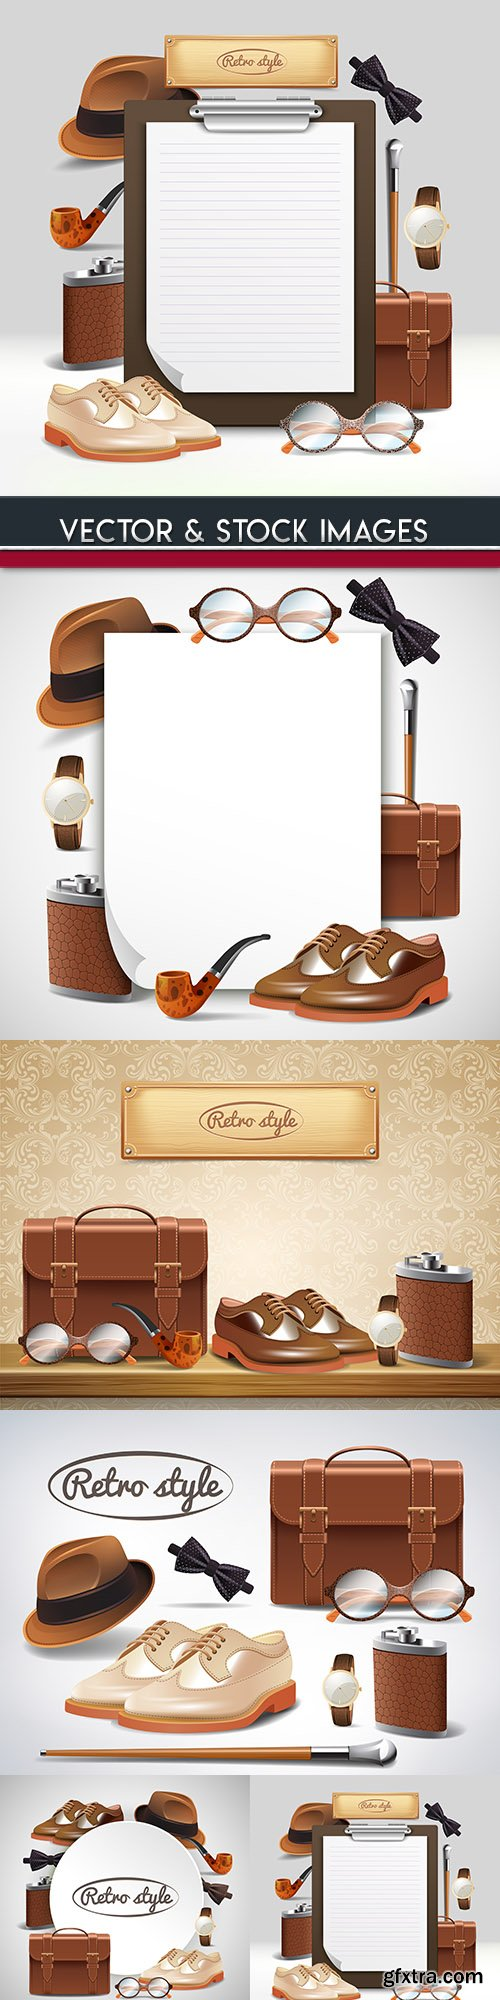 Classic retro gentleman accessories realistic illustration